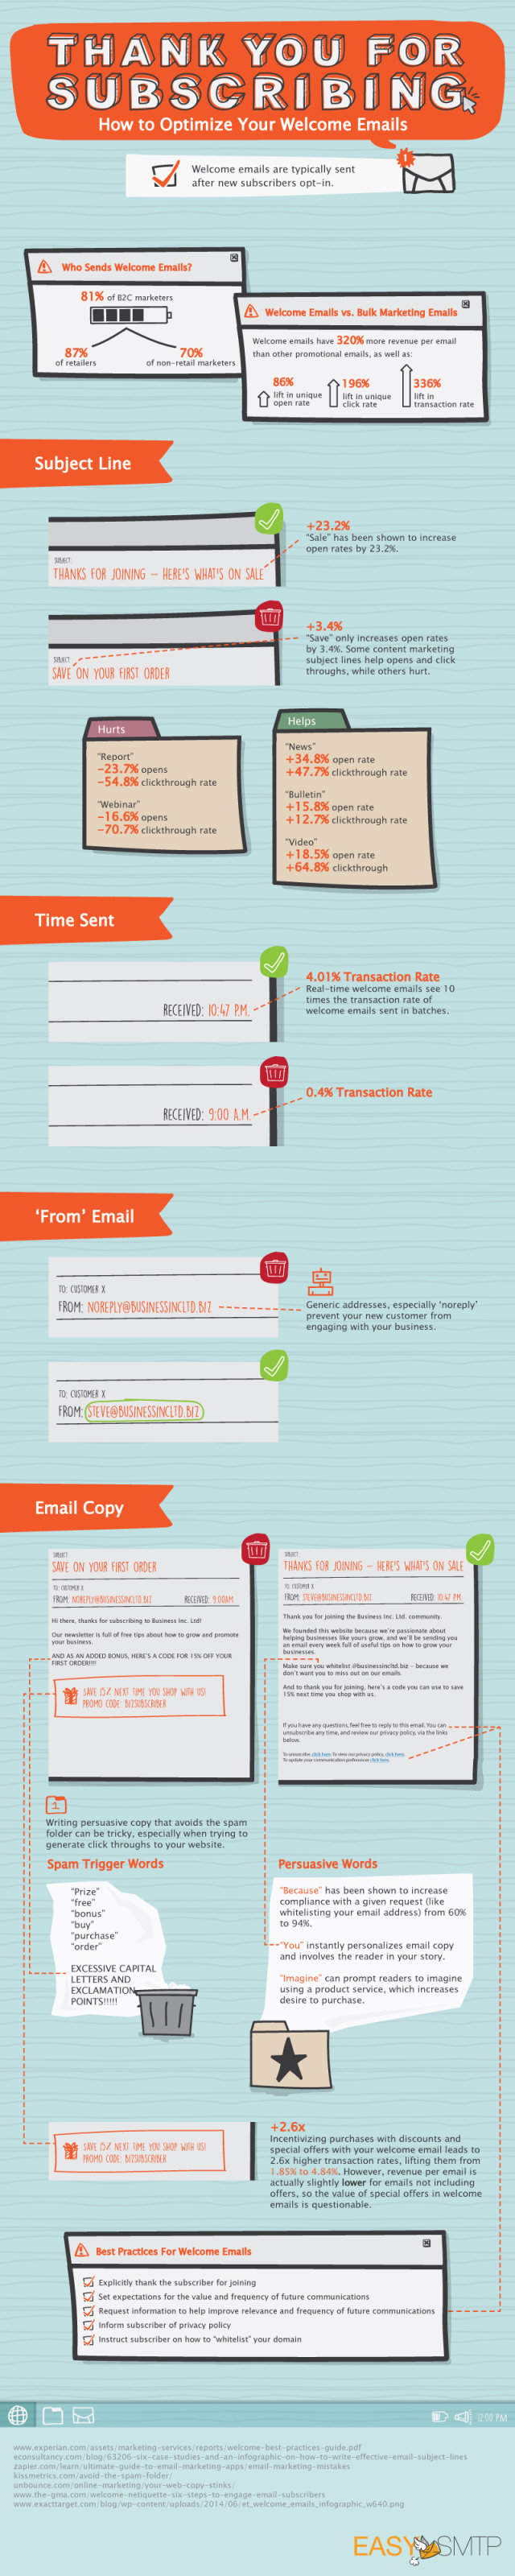 Email Marketing Basics: How to Optimise Your Welcome Emails #Infographic